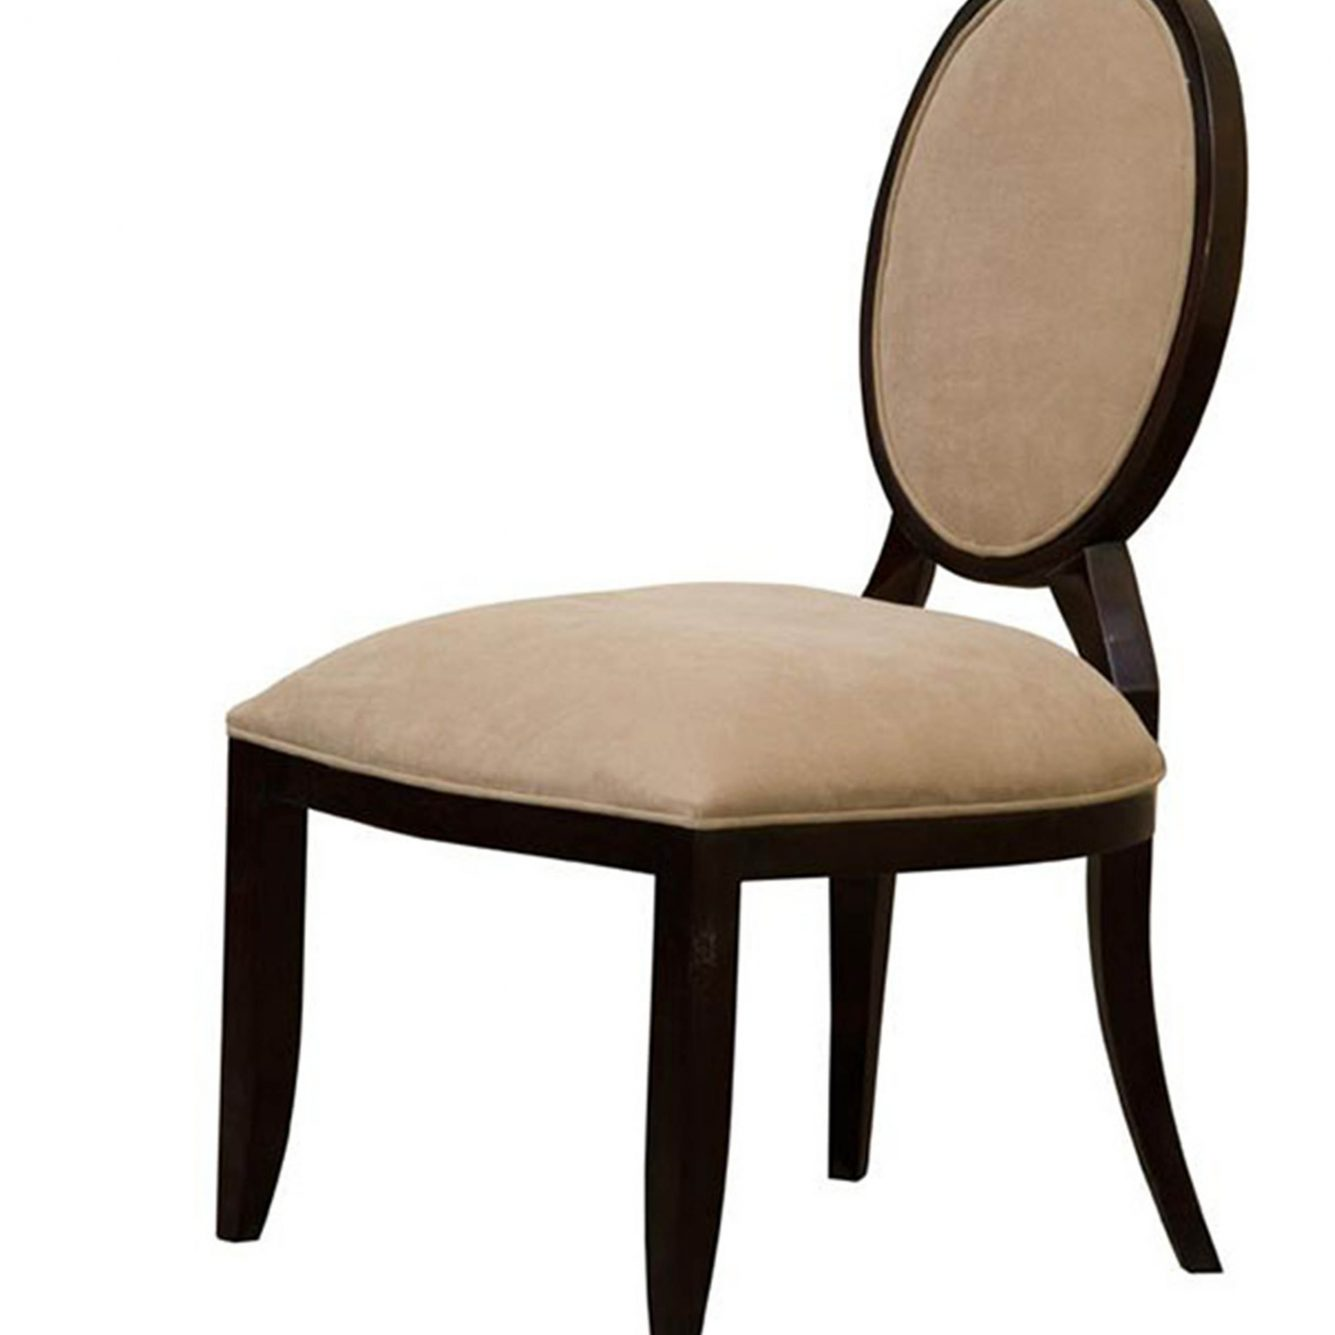 House Haven Dining Chairs 0016 Barry Dining Chair